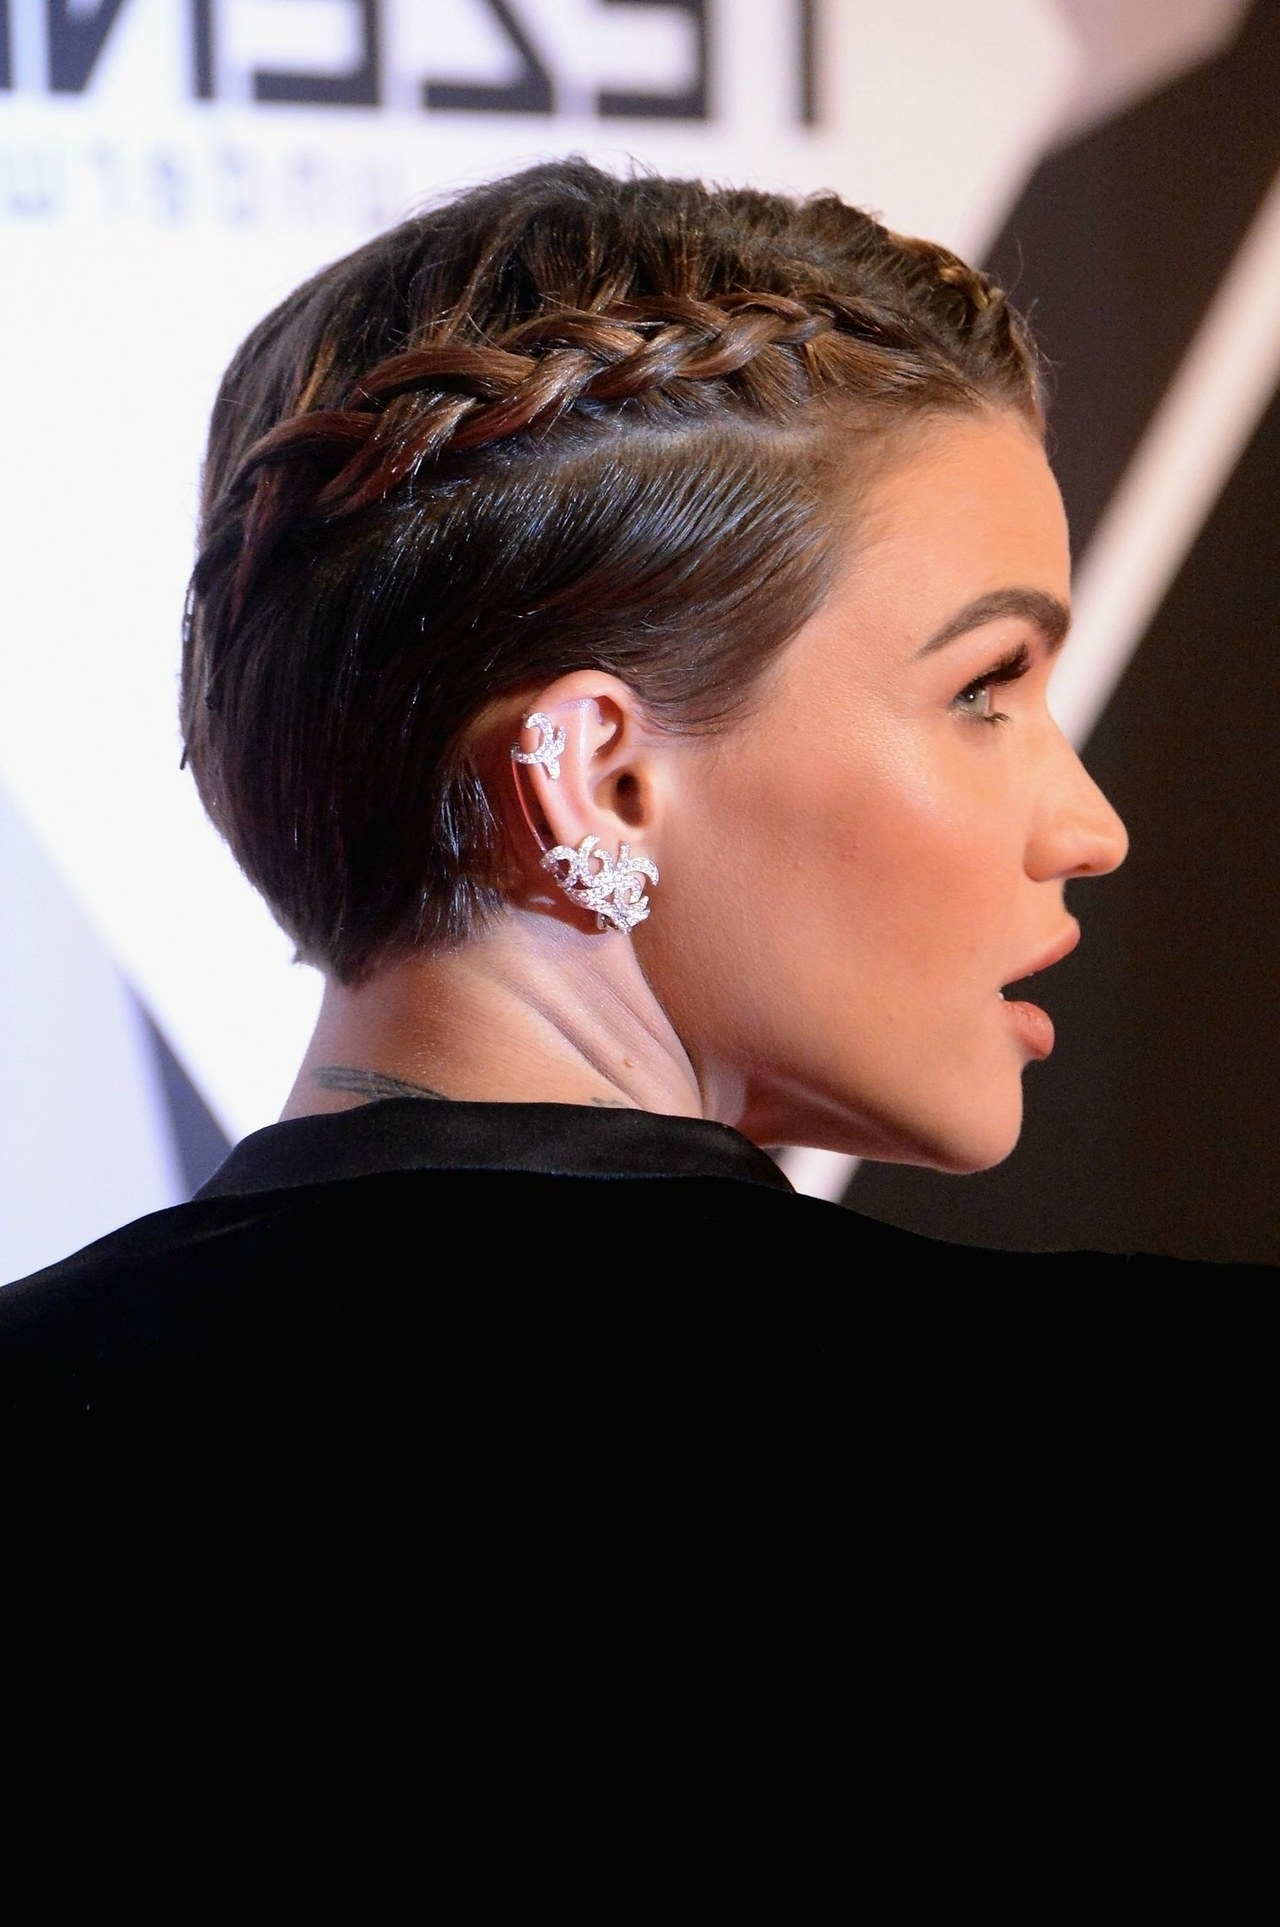 Celebrity Braided Hairstyle Inspiration: The Best Edgy Braids Of Inside Current Sculptural Punky Ponytail Braids (View 13 of 15)